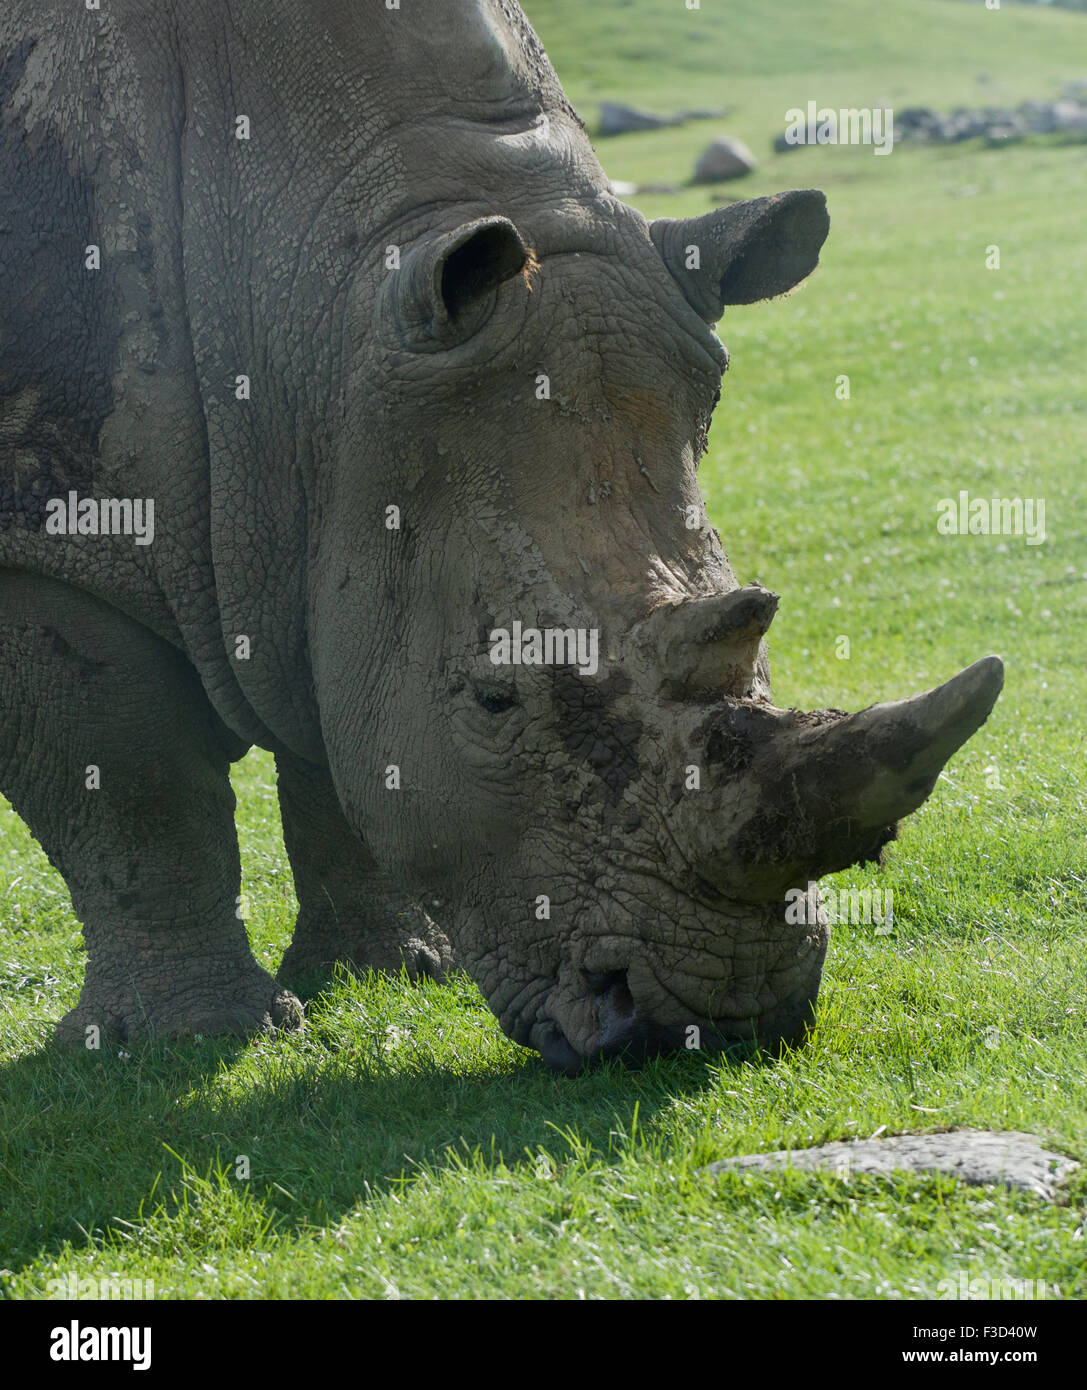 Beautiful portrait of the white rhinoceros on the field Stock Photo